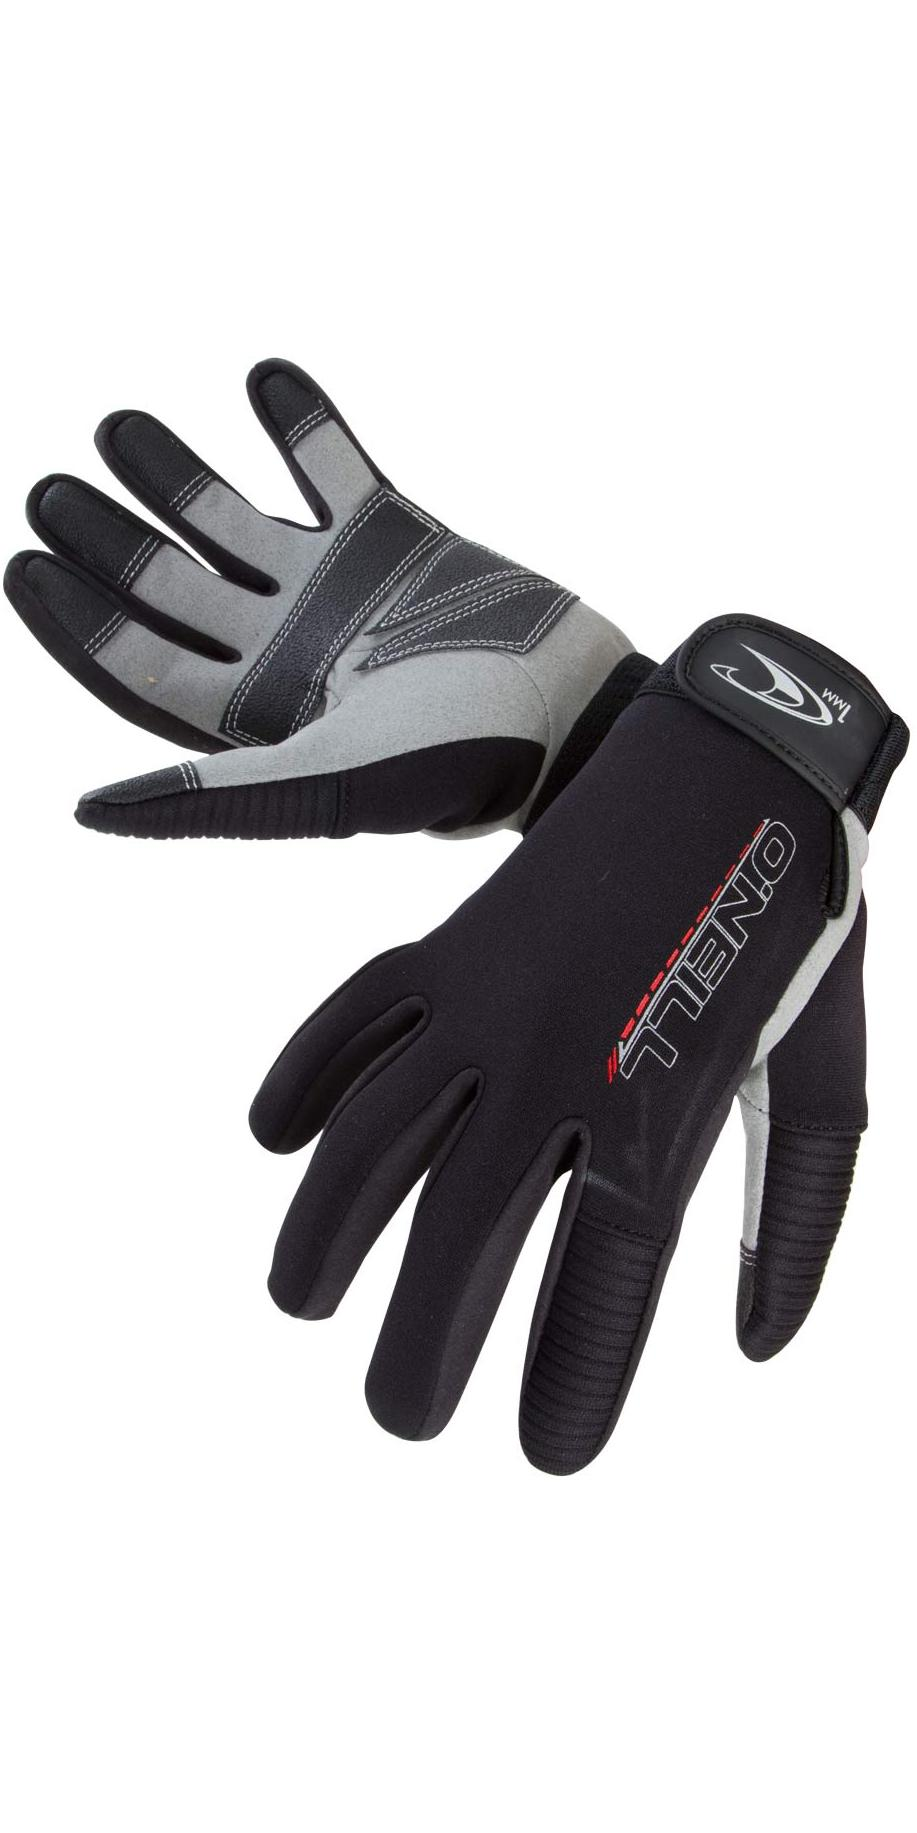 2020 O'Neill Explore 1mm Gloves 3997